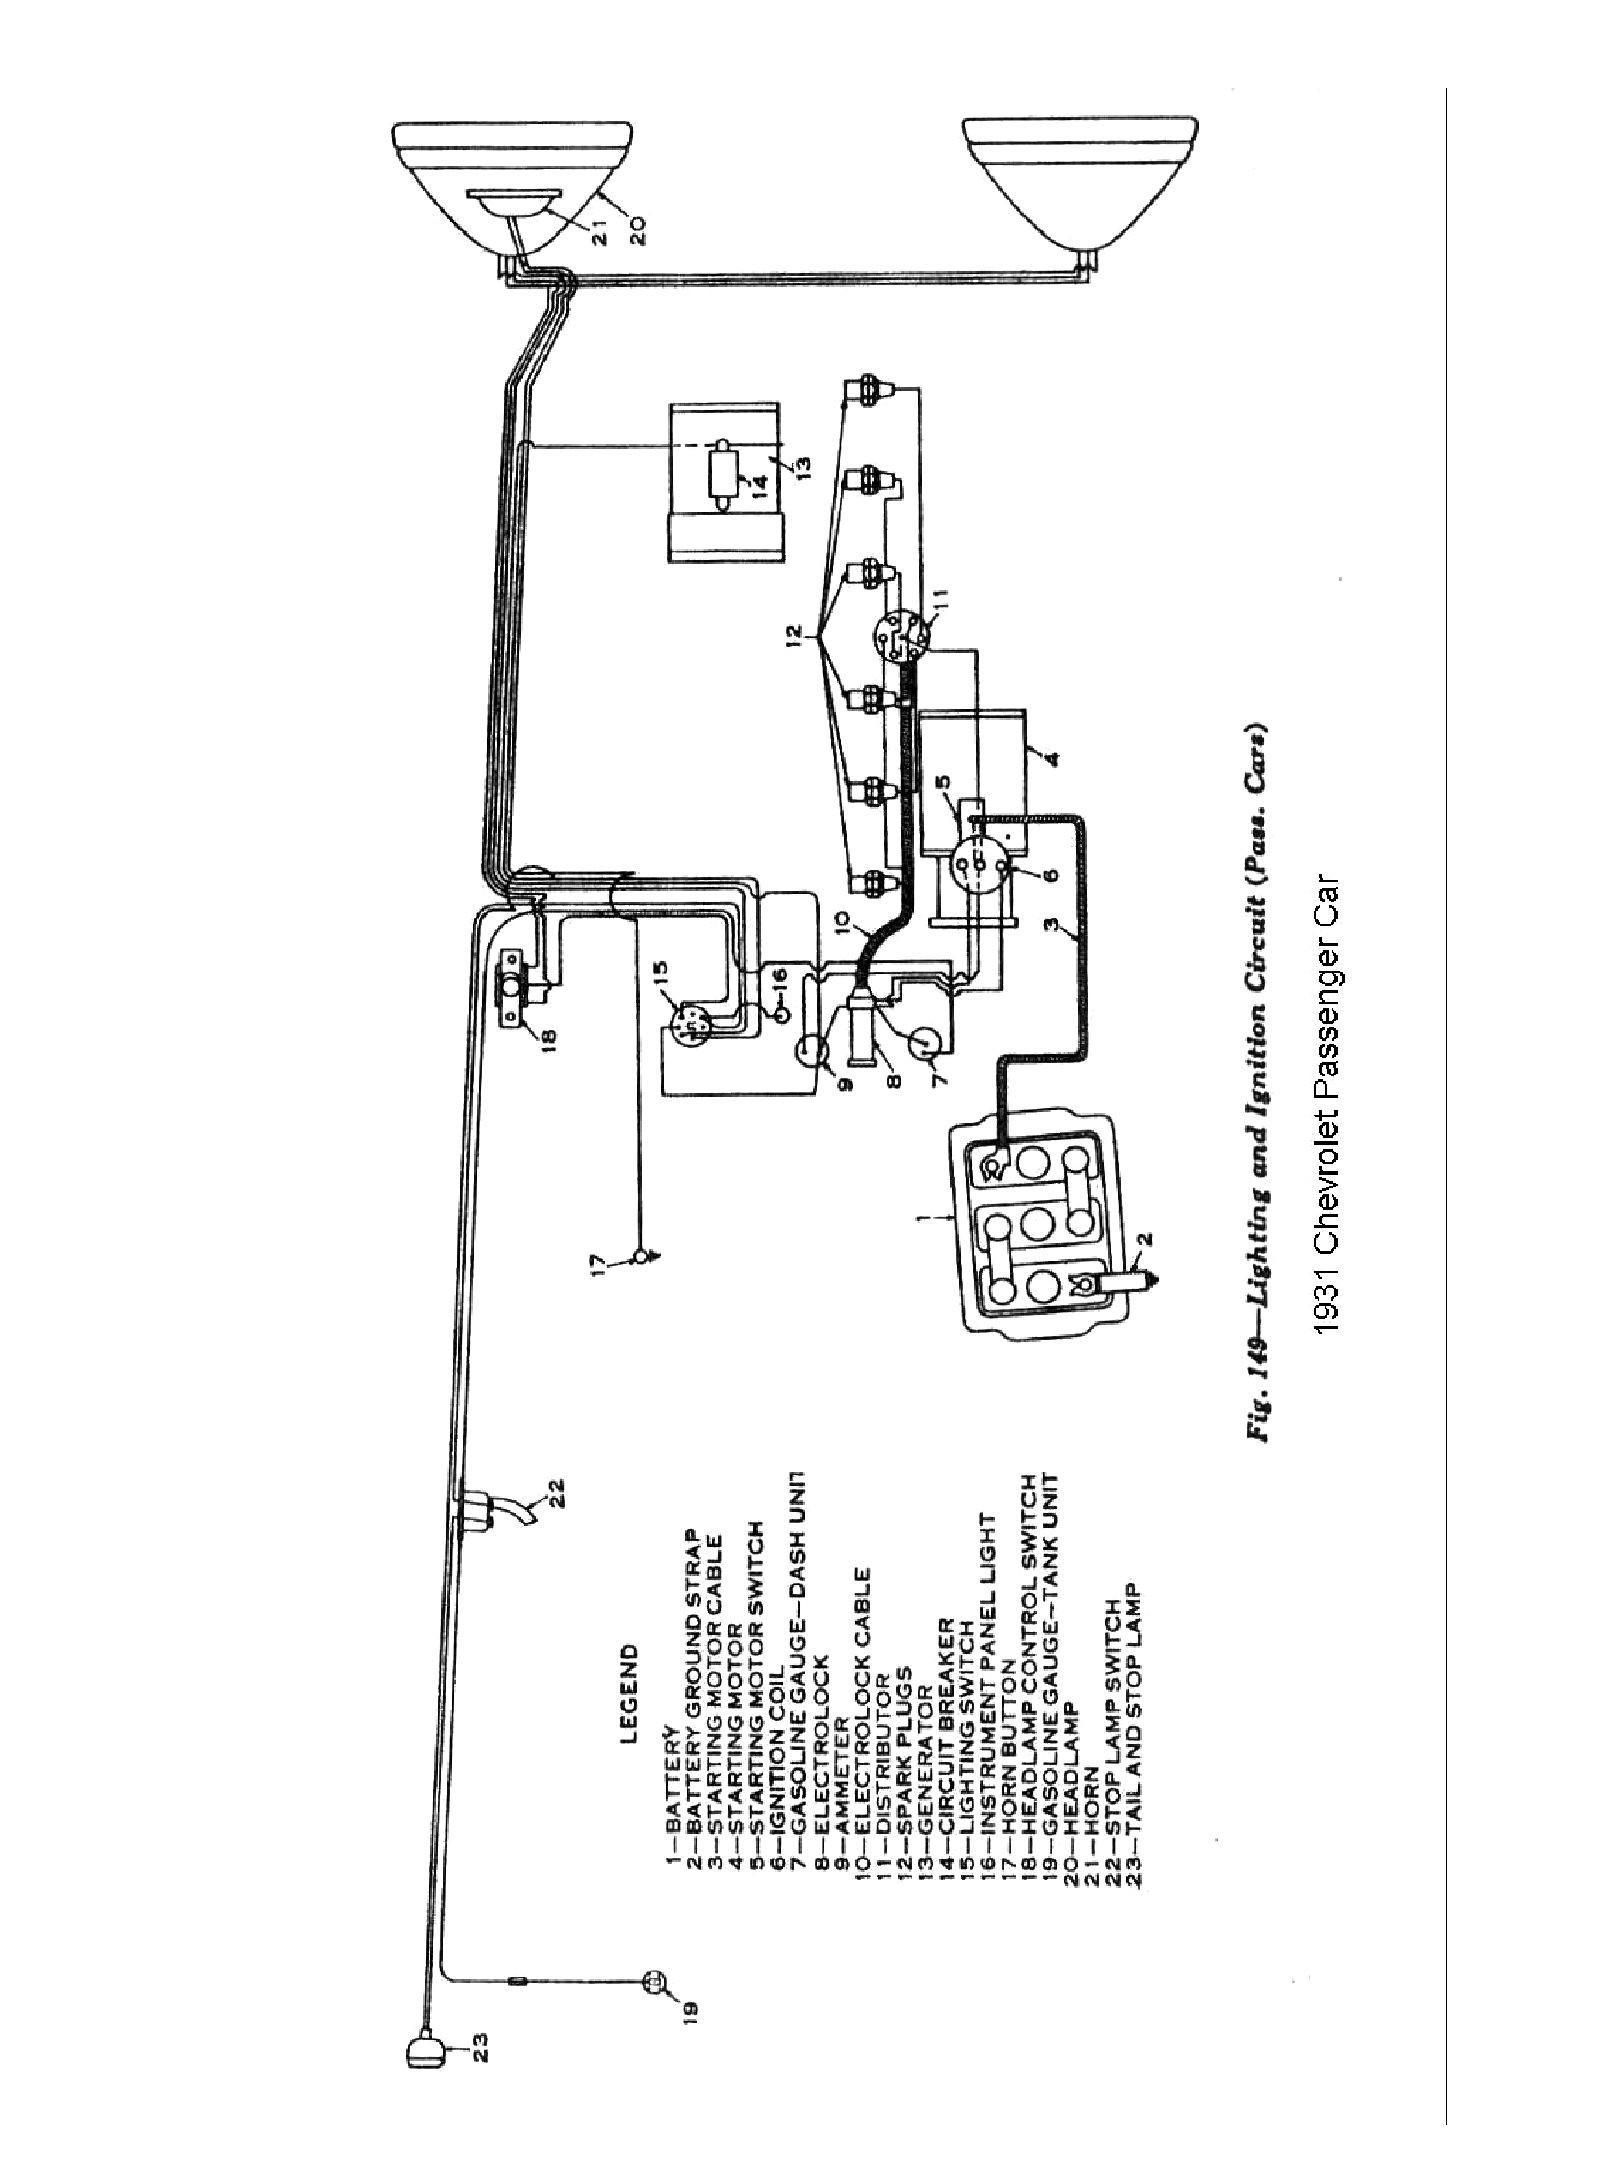 wiring diagram for 1 4 plug best wiring library rh 10 princestaash org